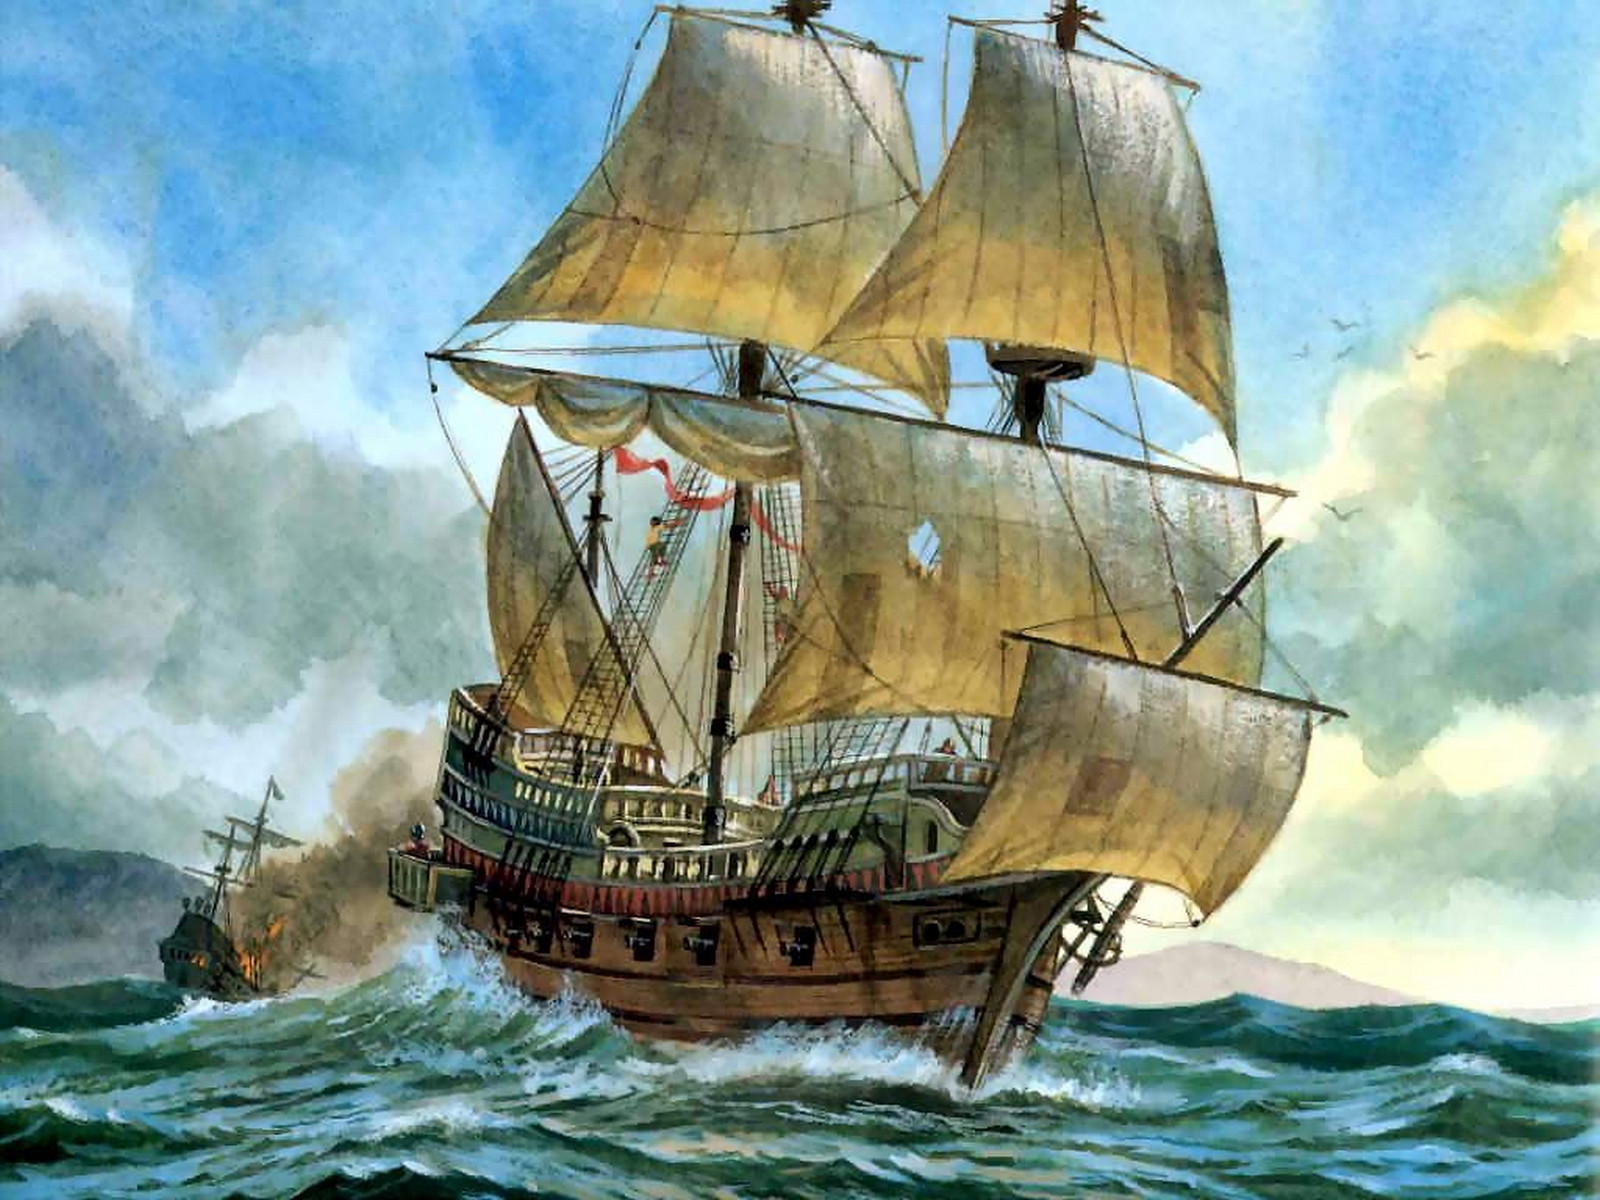 SAILING SHIPS | actor | Pinterest | Sailing ships